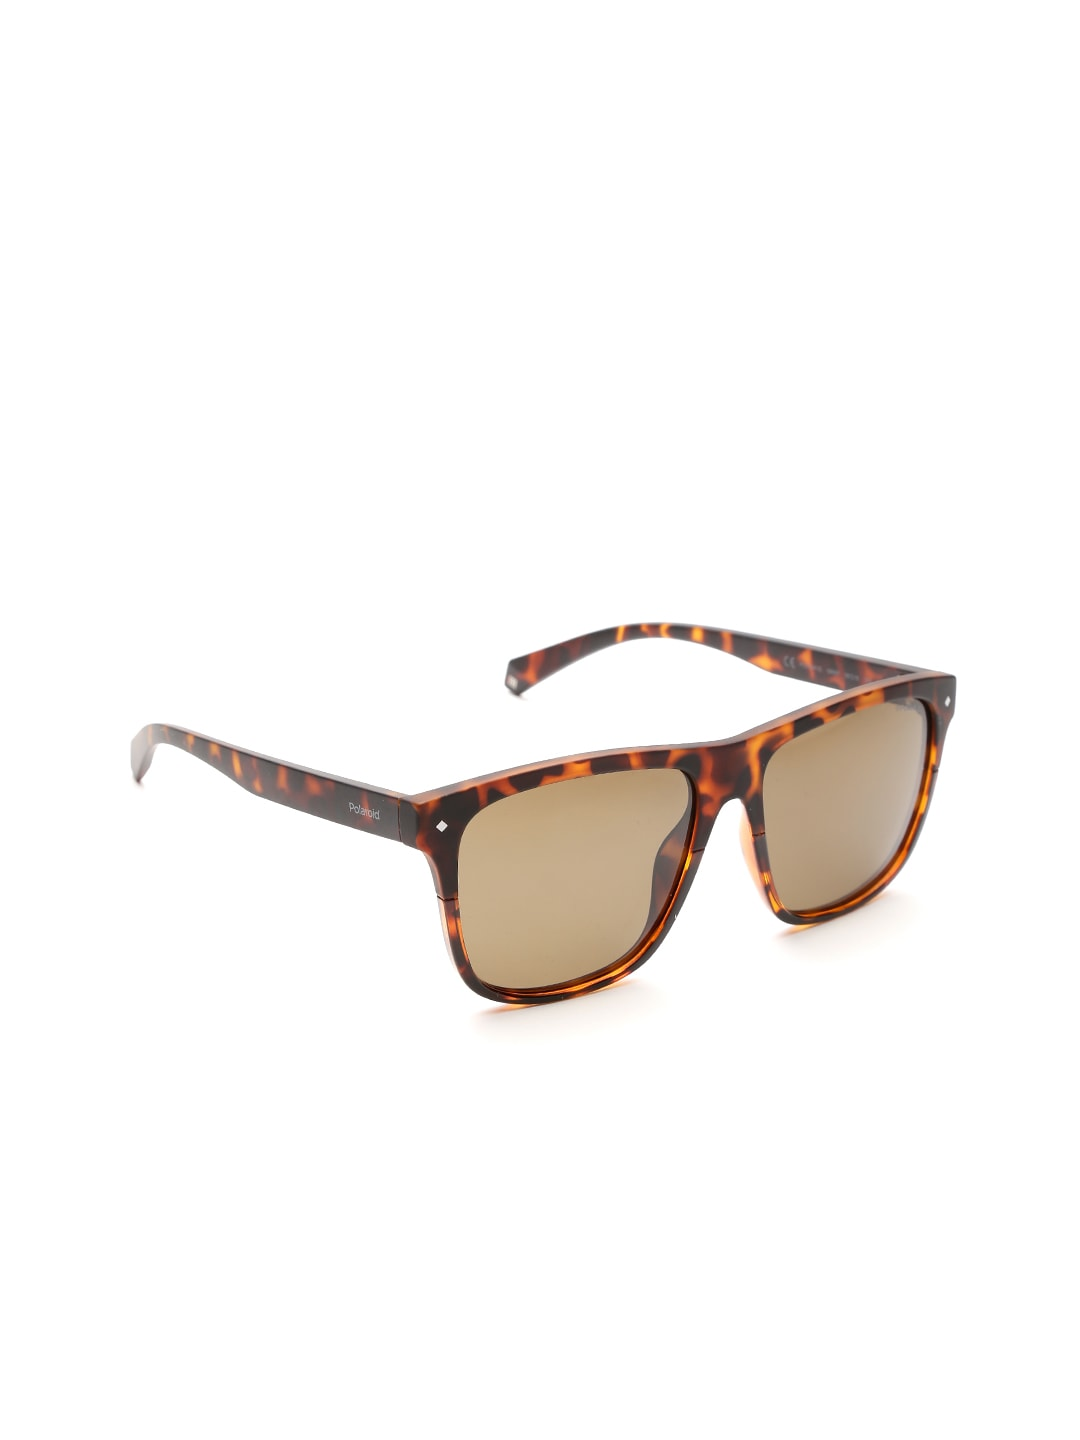 06e513957a72f Sunglasses - Buy Shades for Men and Women Online in India